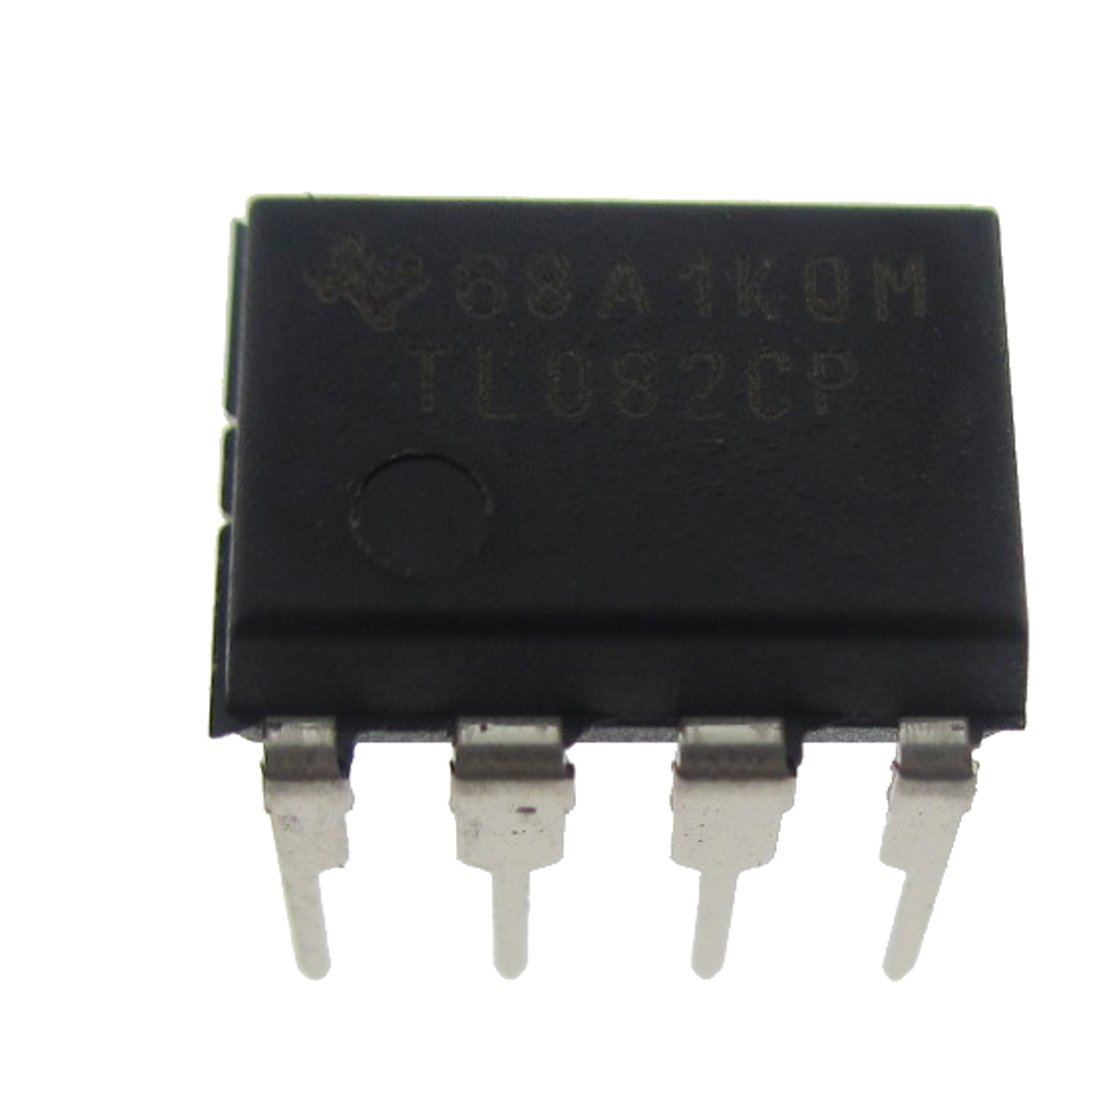 10 Pcs Tl082 Tl082cp Tl082cn J Fet Dual Op Amp Ic Dip 8 Jfet Inputs Lm358n Lowpower Opamp With Low Input Bias Current Industrial Scientific